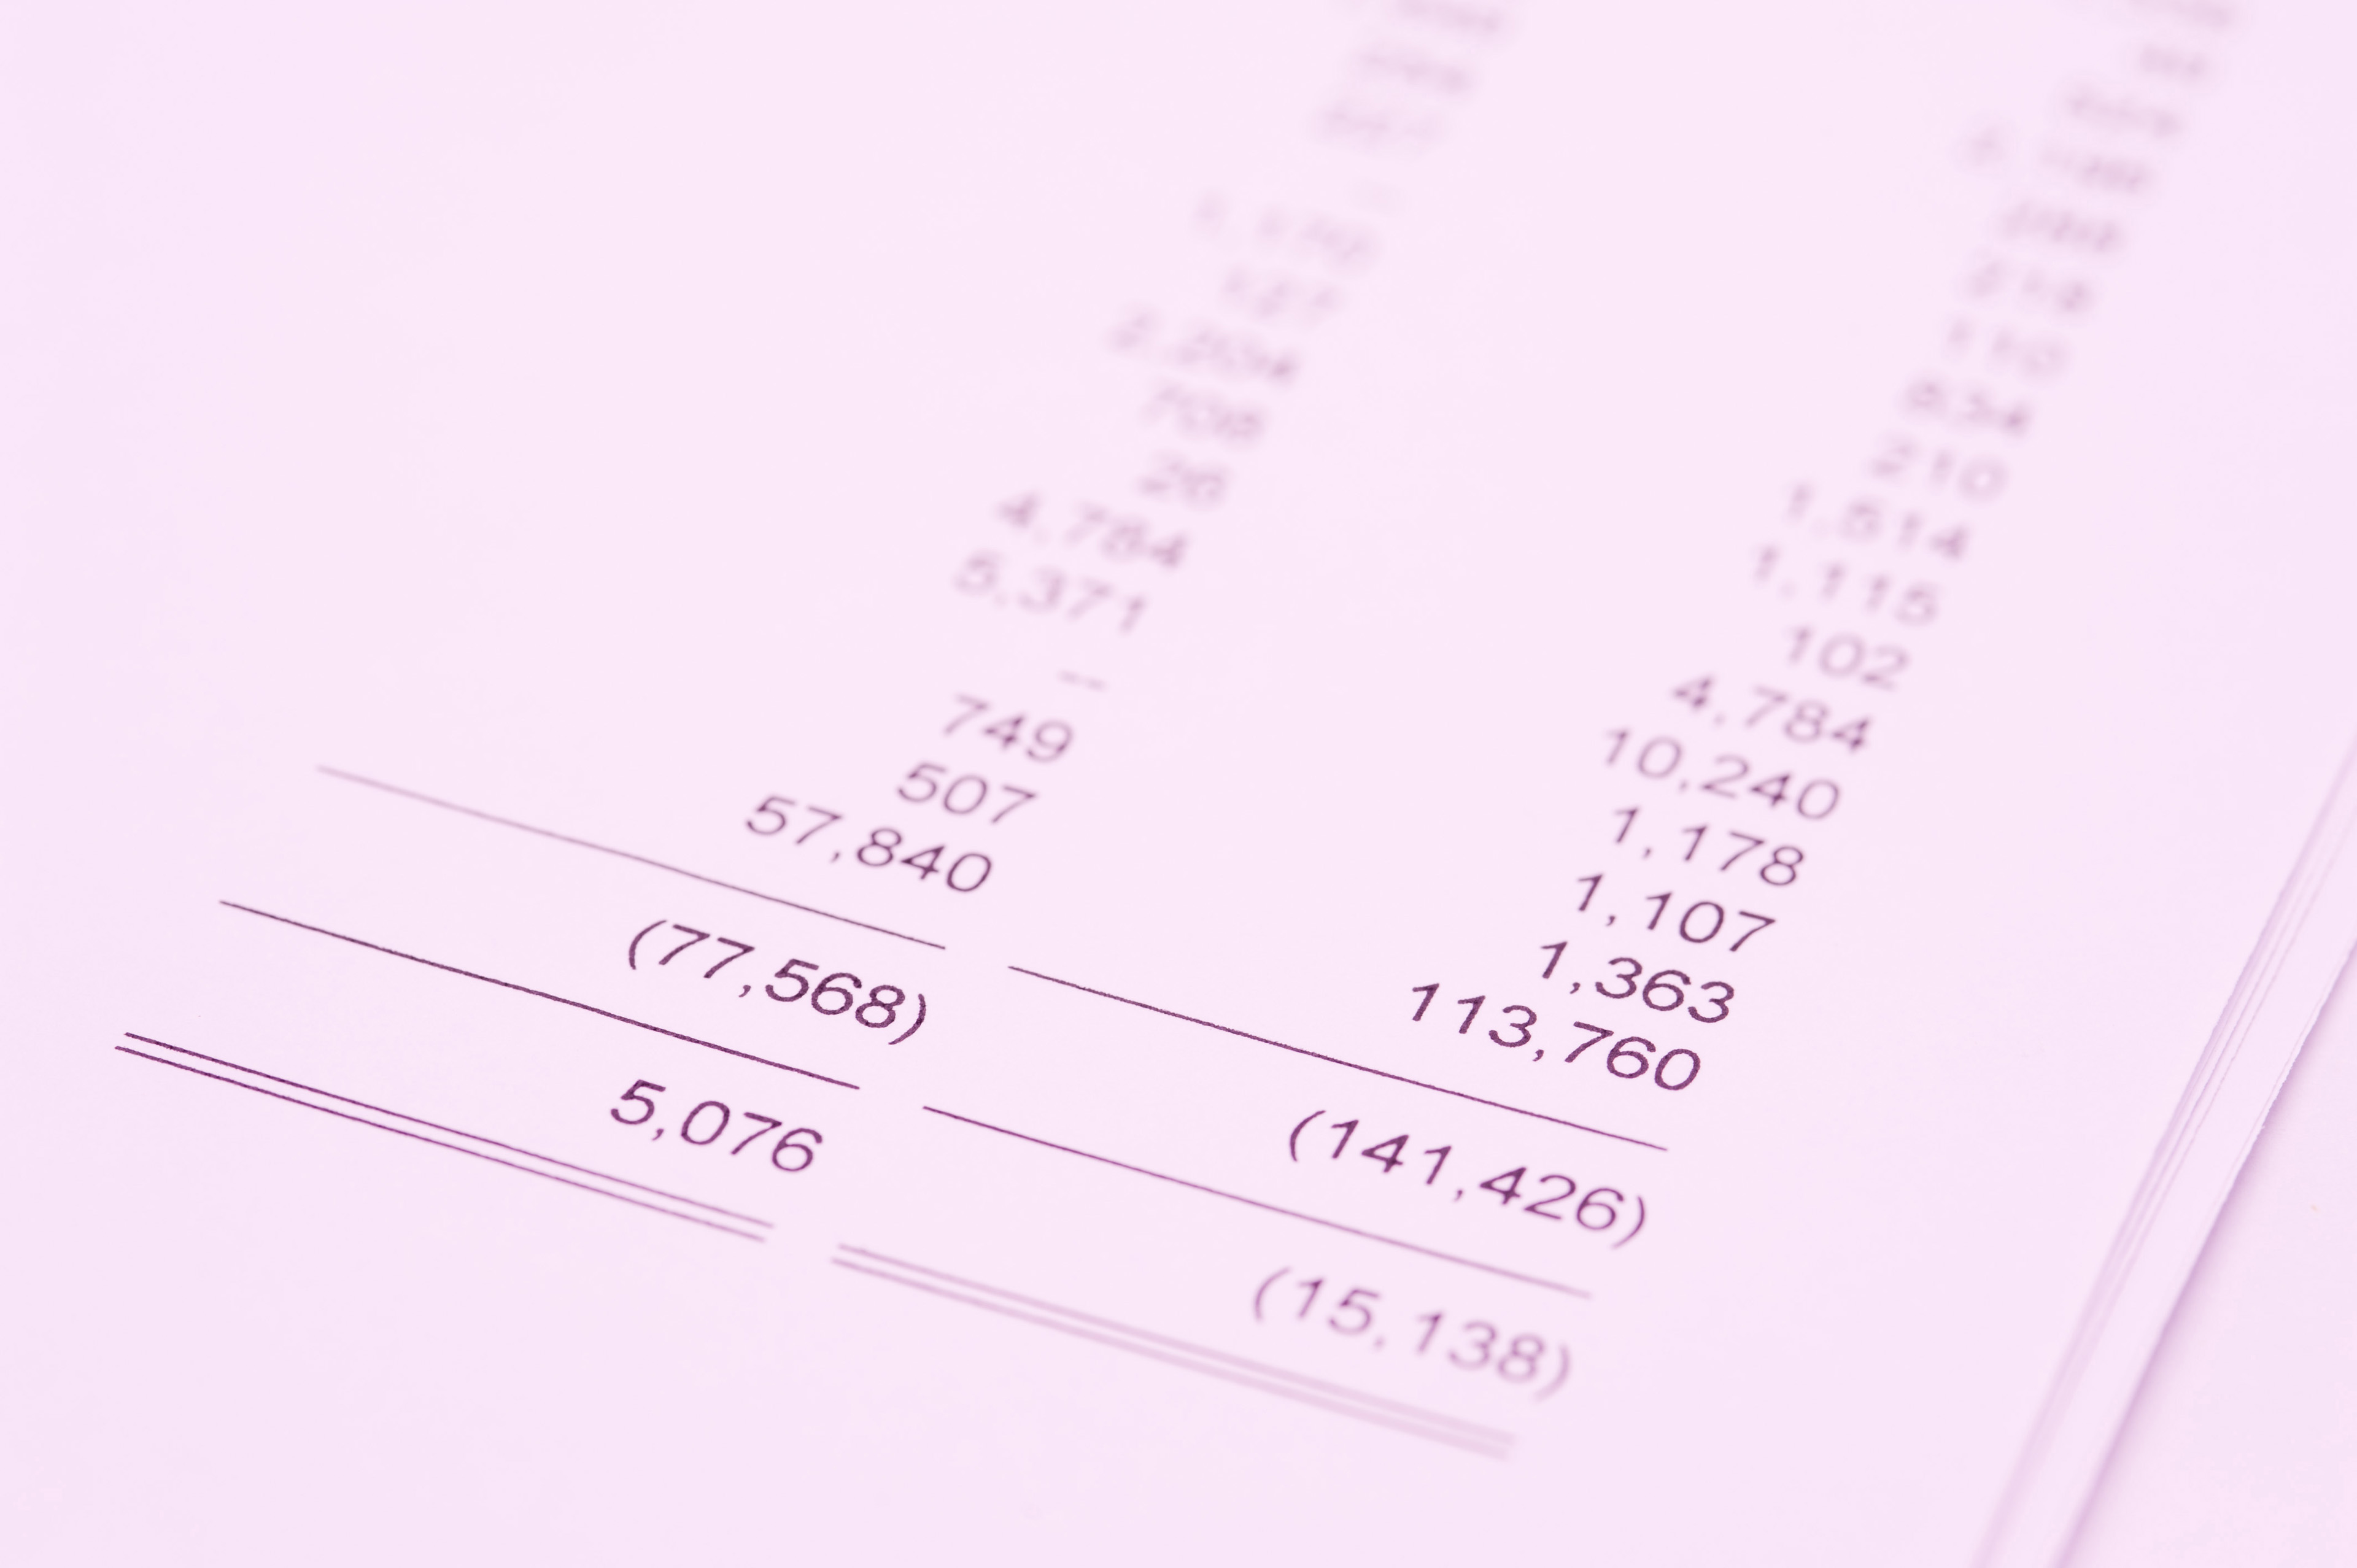 Annual bookkeeping concept with a close up view of the balance sheet totals showing income and expenditure and write downs